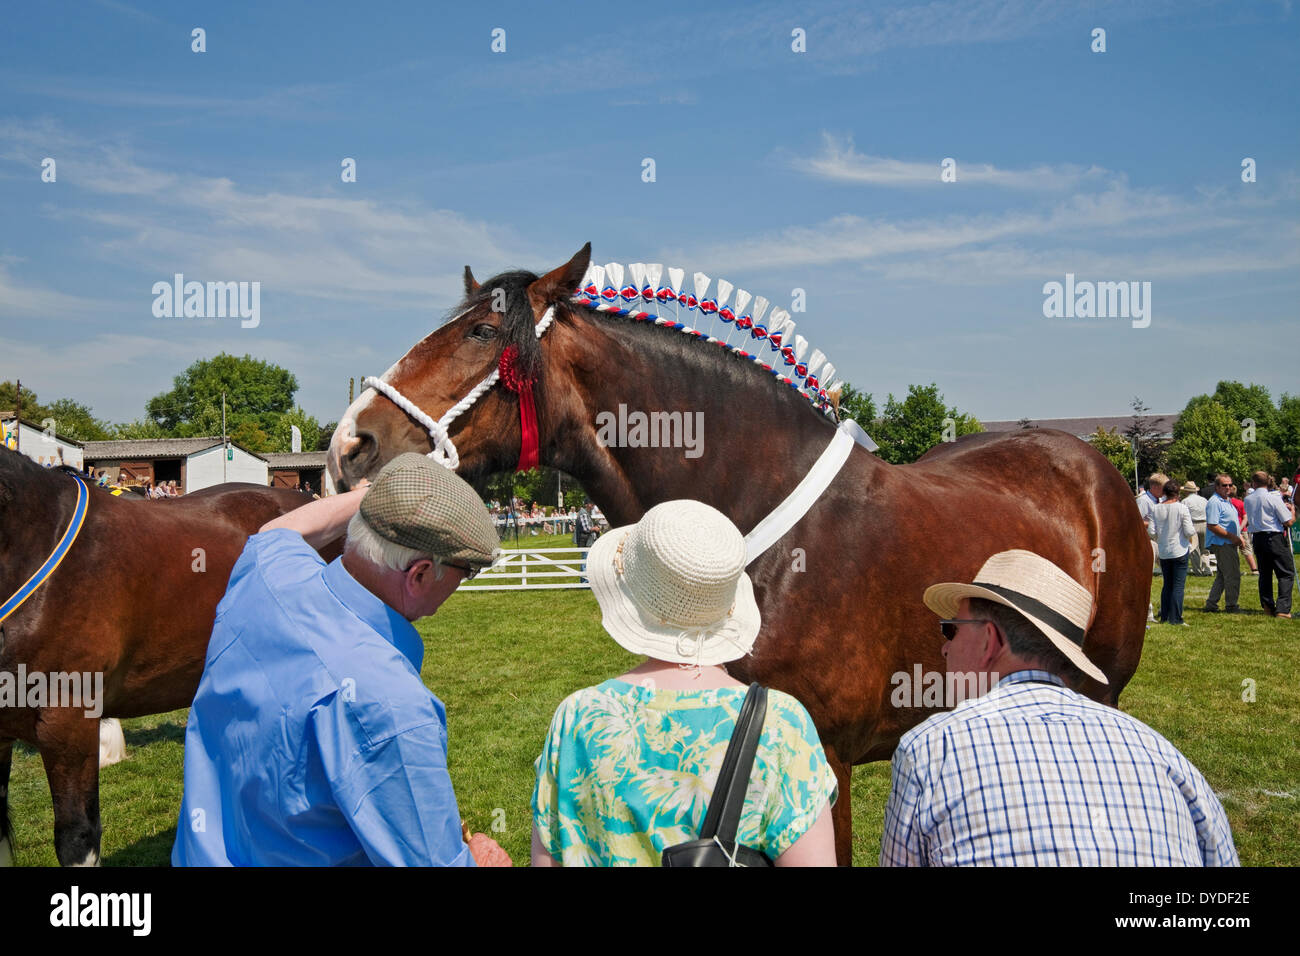 Shire horses at the Great Yorkshire Show. - Stock Image